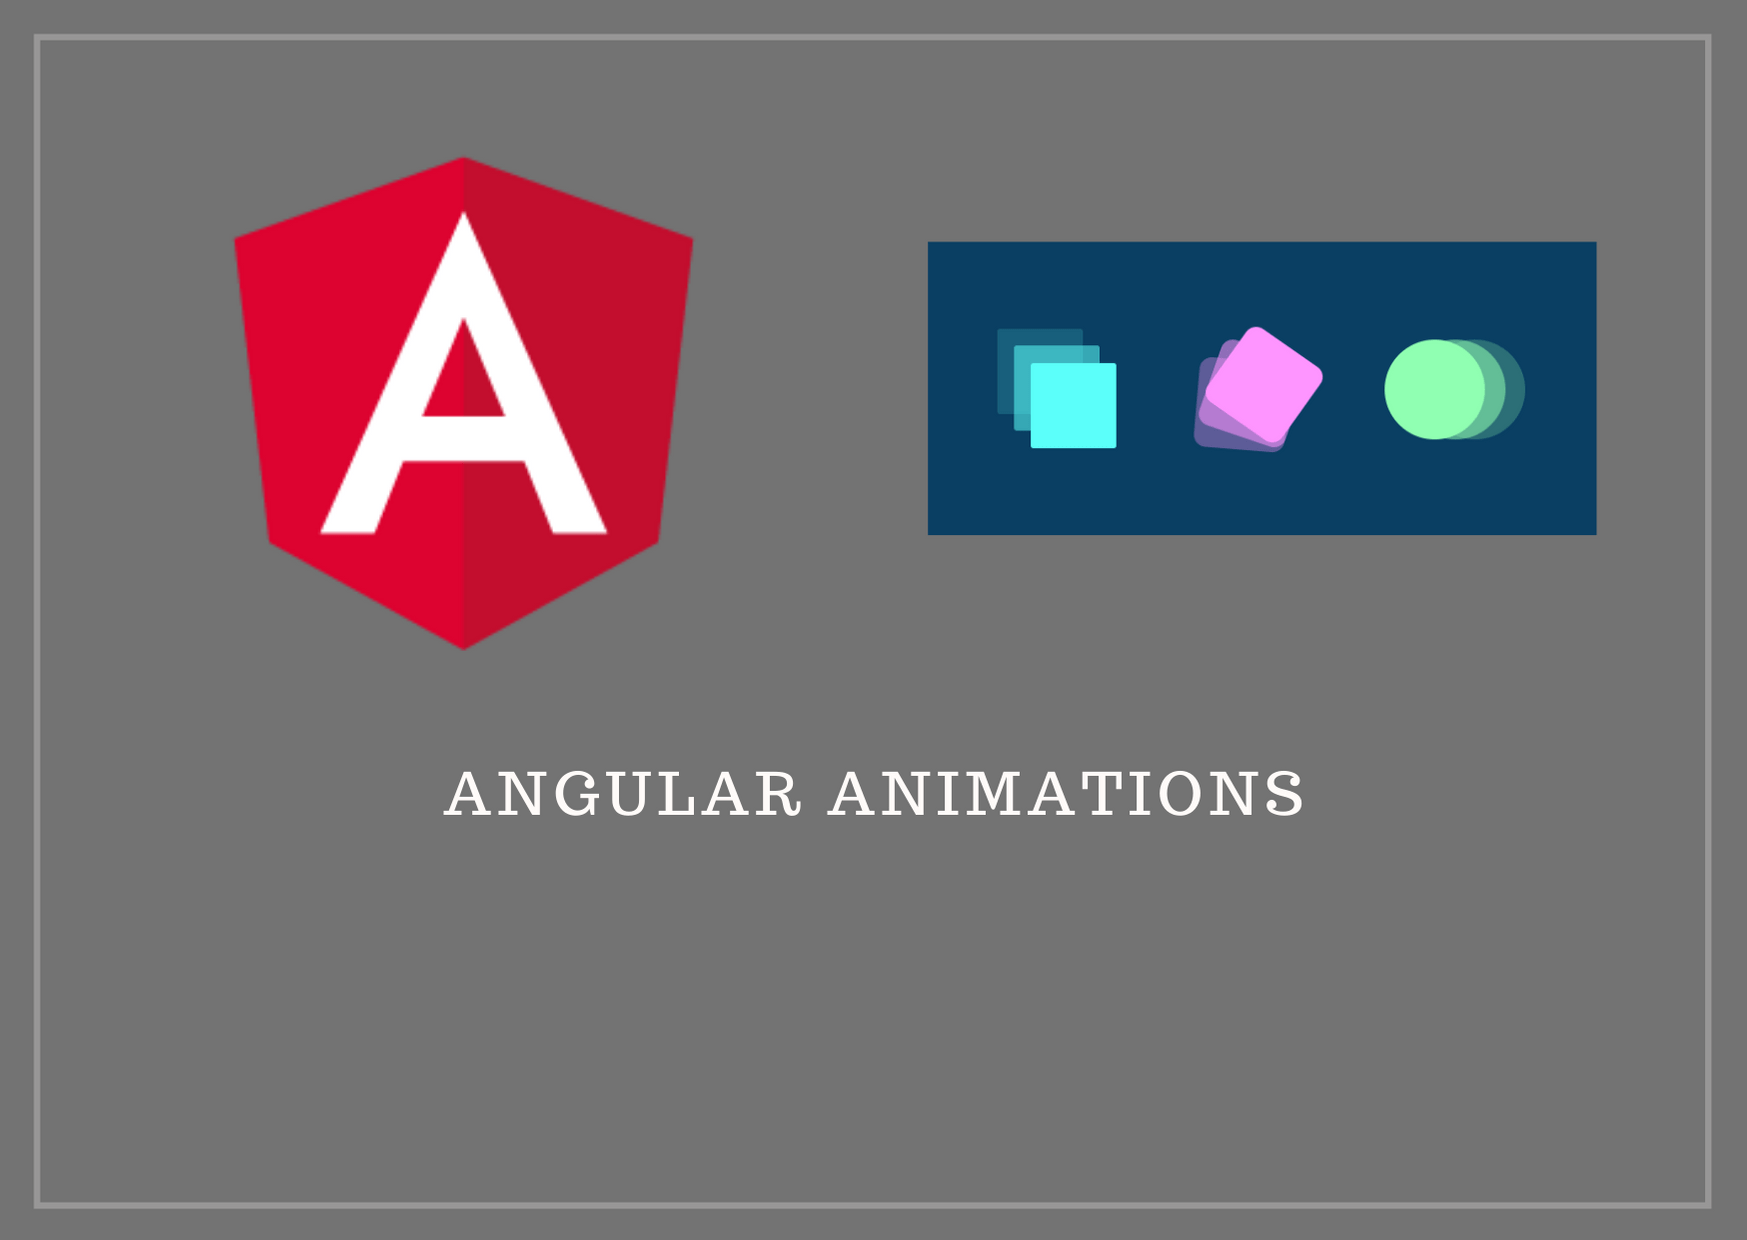 angular animations